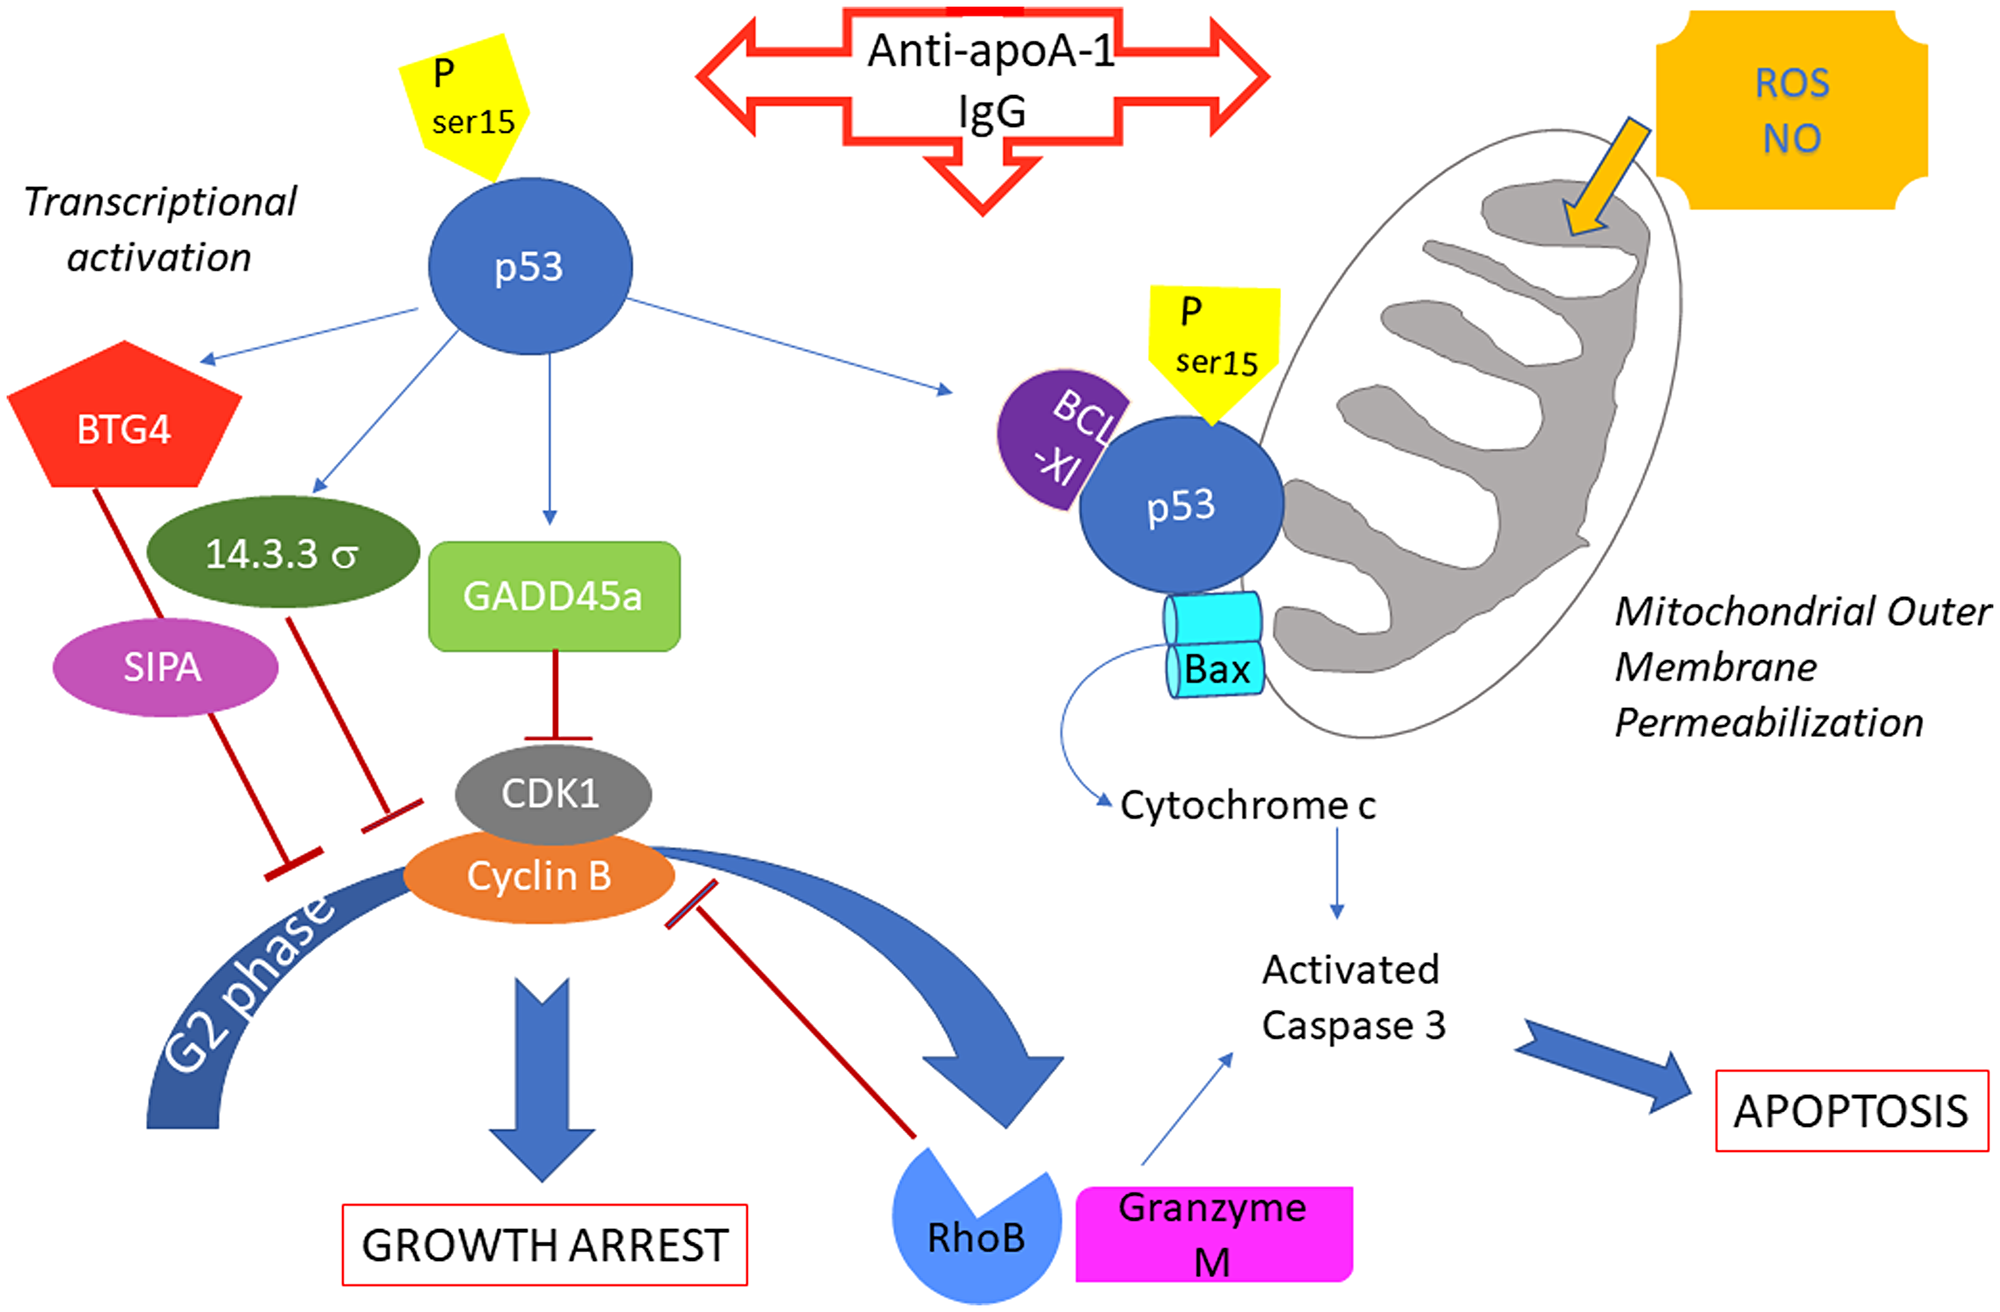 Summary of potential anti-apoA-1 antibody induced signalings involved in cancer cell growth arrest and apoptosis.